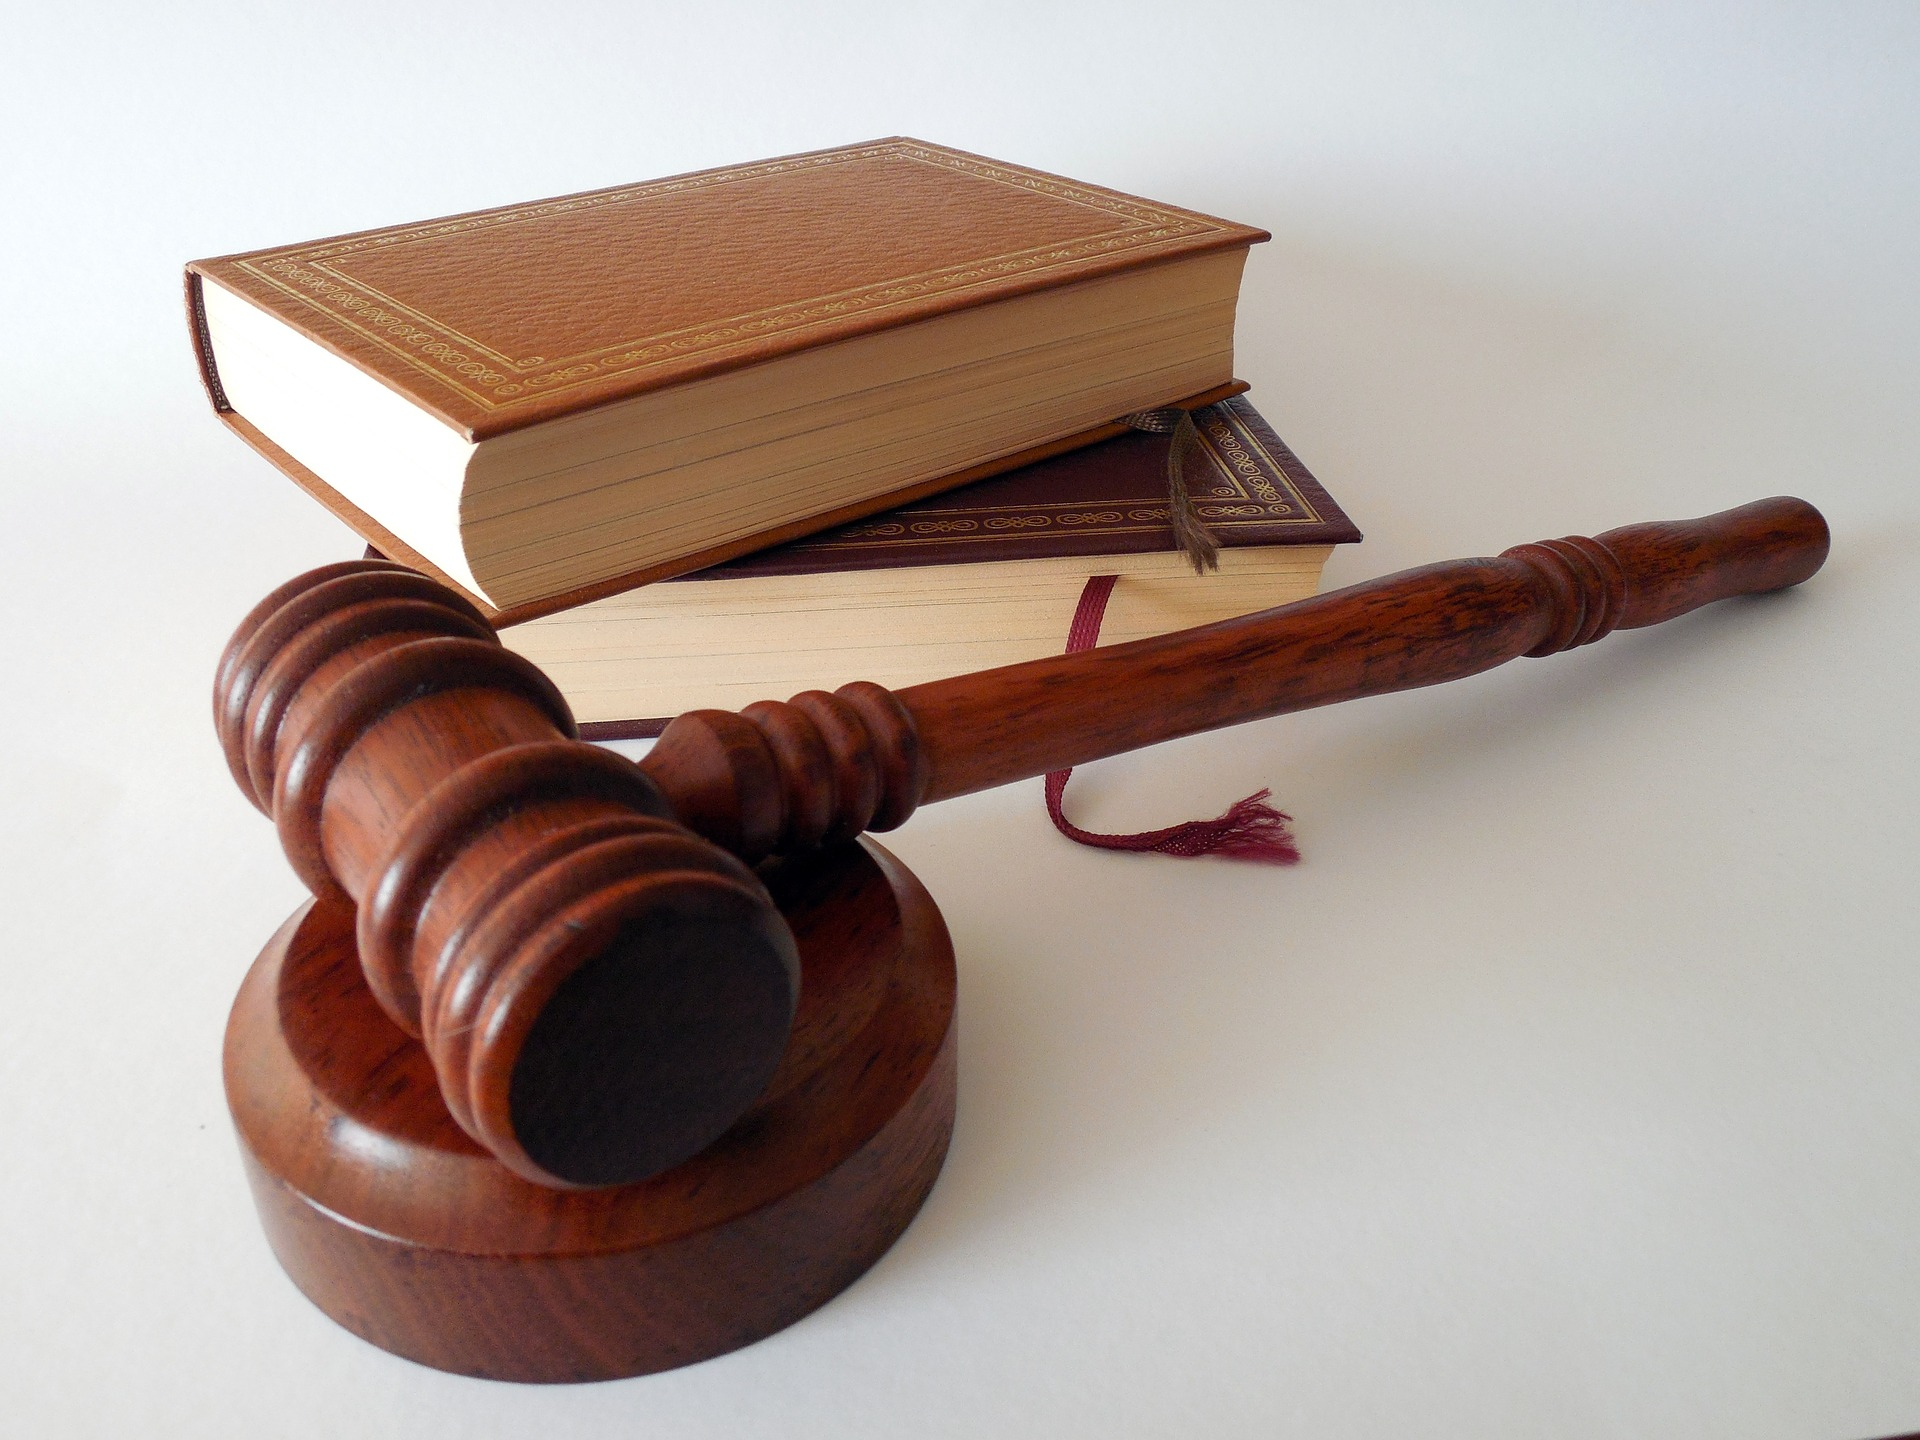 Three Reasons Precedent Legal Services Is the Messenger Service for You